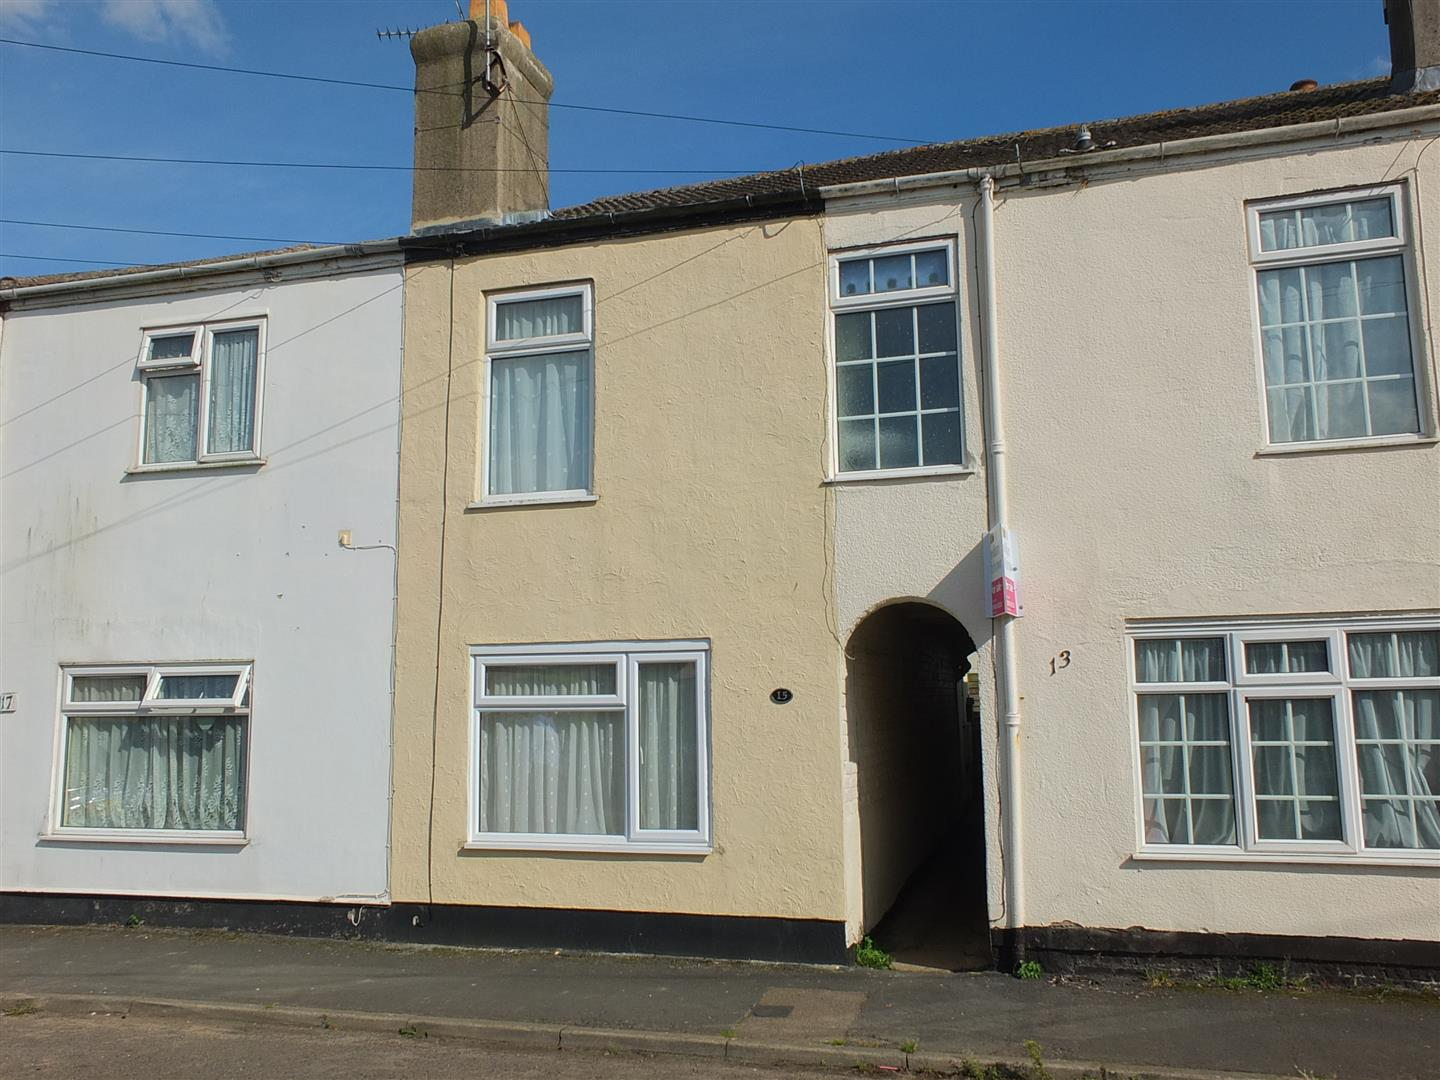 2 bed terraced house to rent in Sutton Bridge Spalding, PE12 9SR, PE12